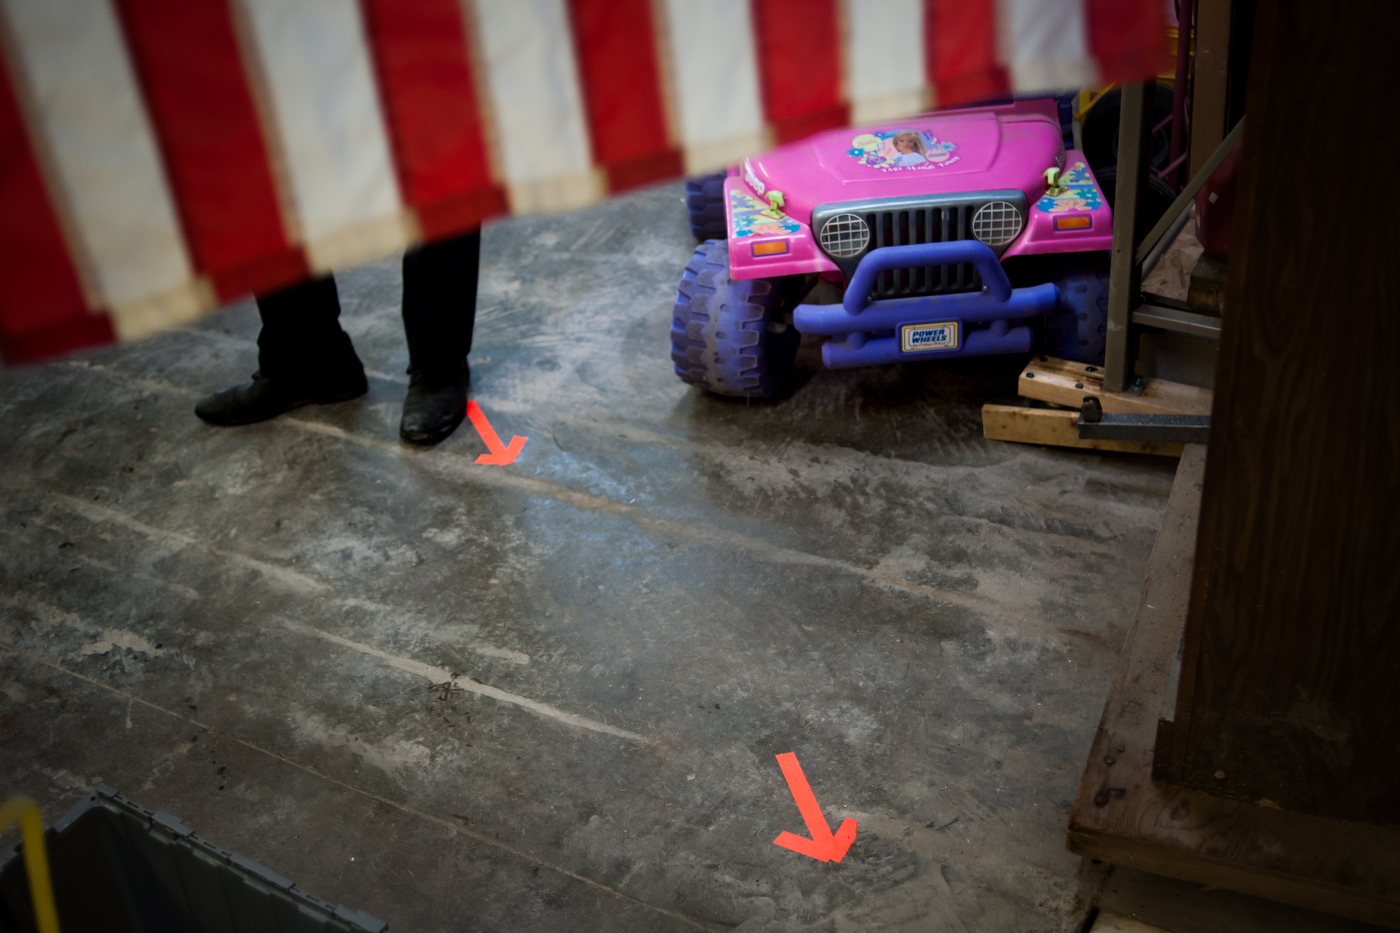 A member of Democratic U.S. presidential candidate Bernie Sanders' staff awaits his arrival as arrows point his path toward the microphone at an event in a garage in Charles City, Iowa on January 30, 2016.